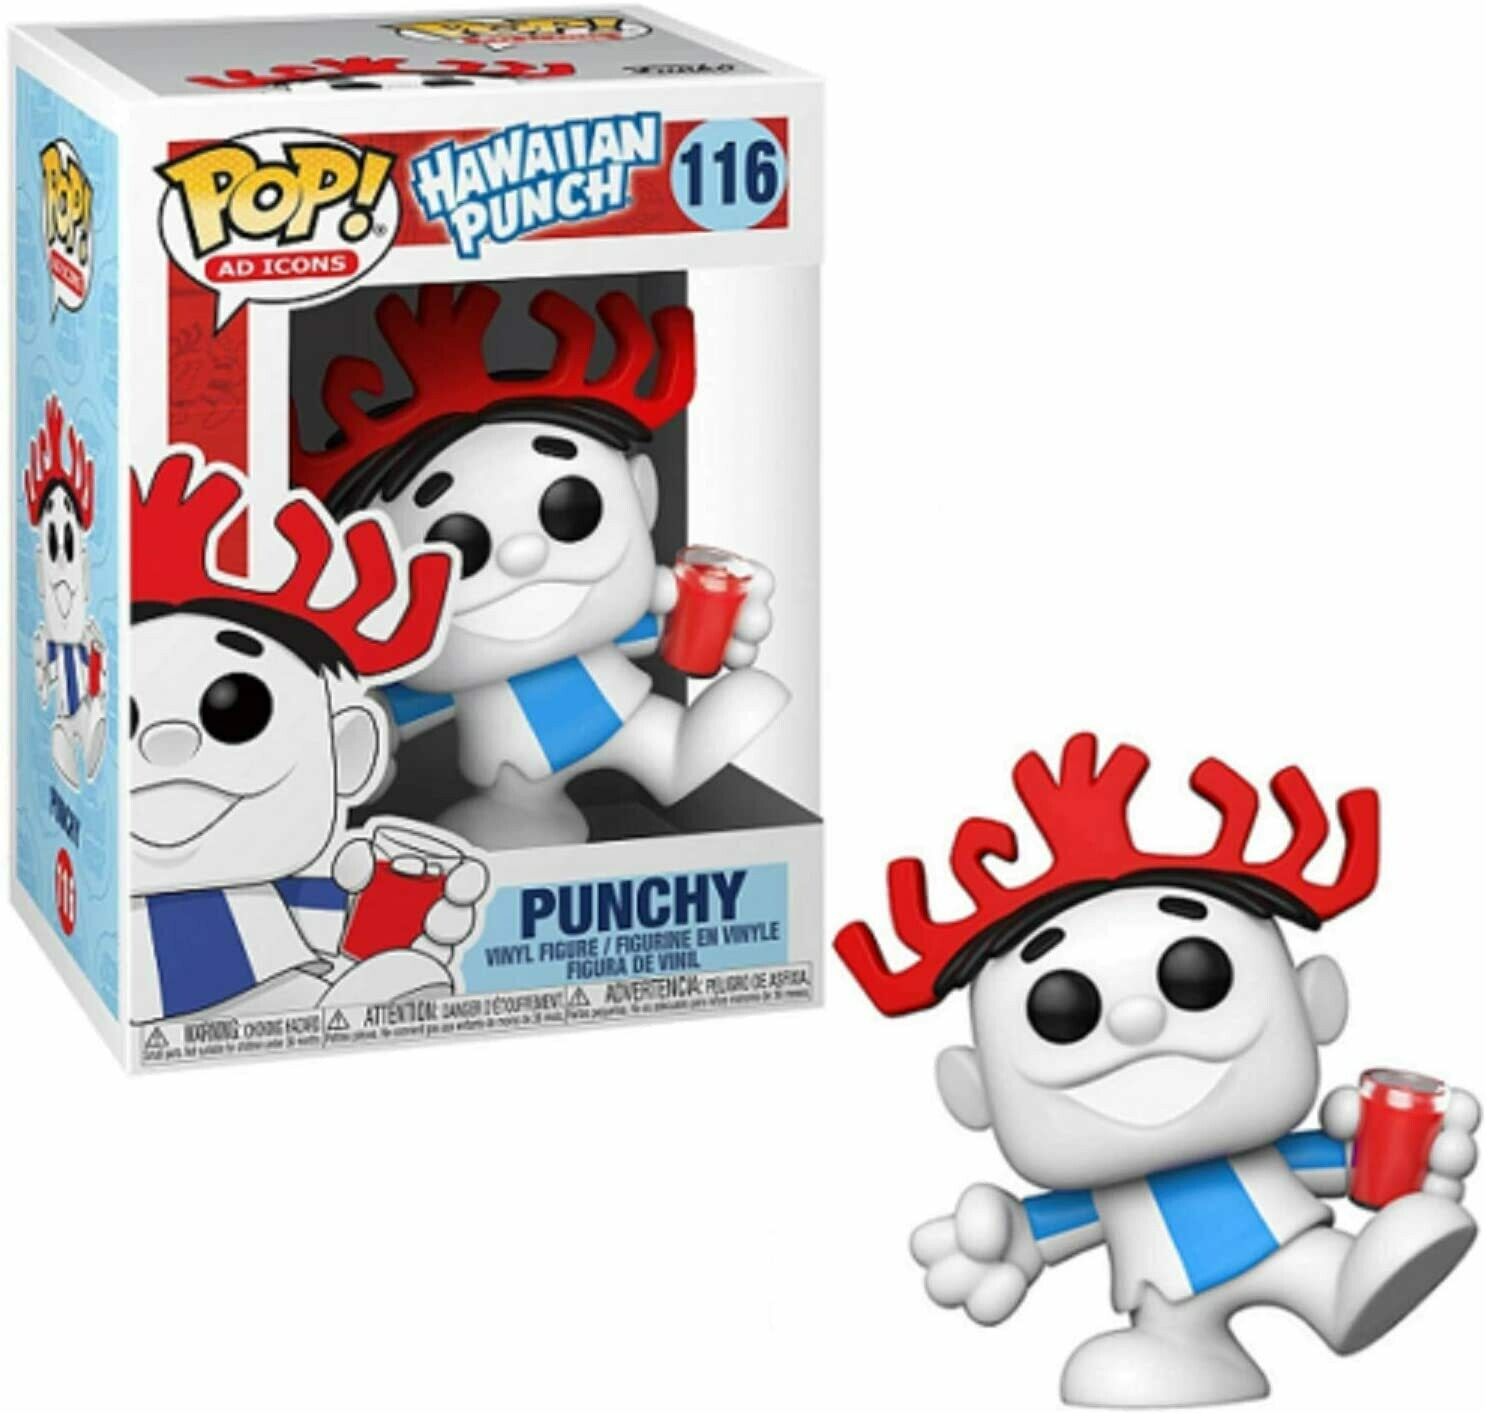 Funko Ad Icon- Hawaiian Punch- Punchy Pop! Vinyl Figure